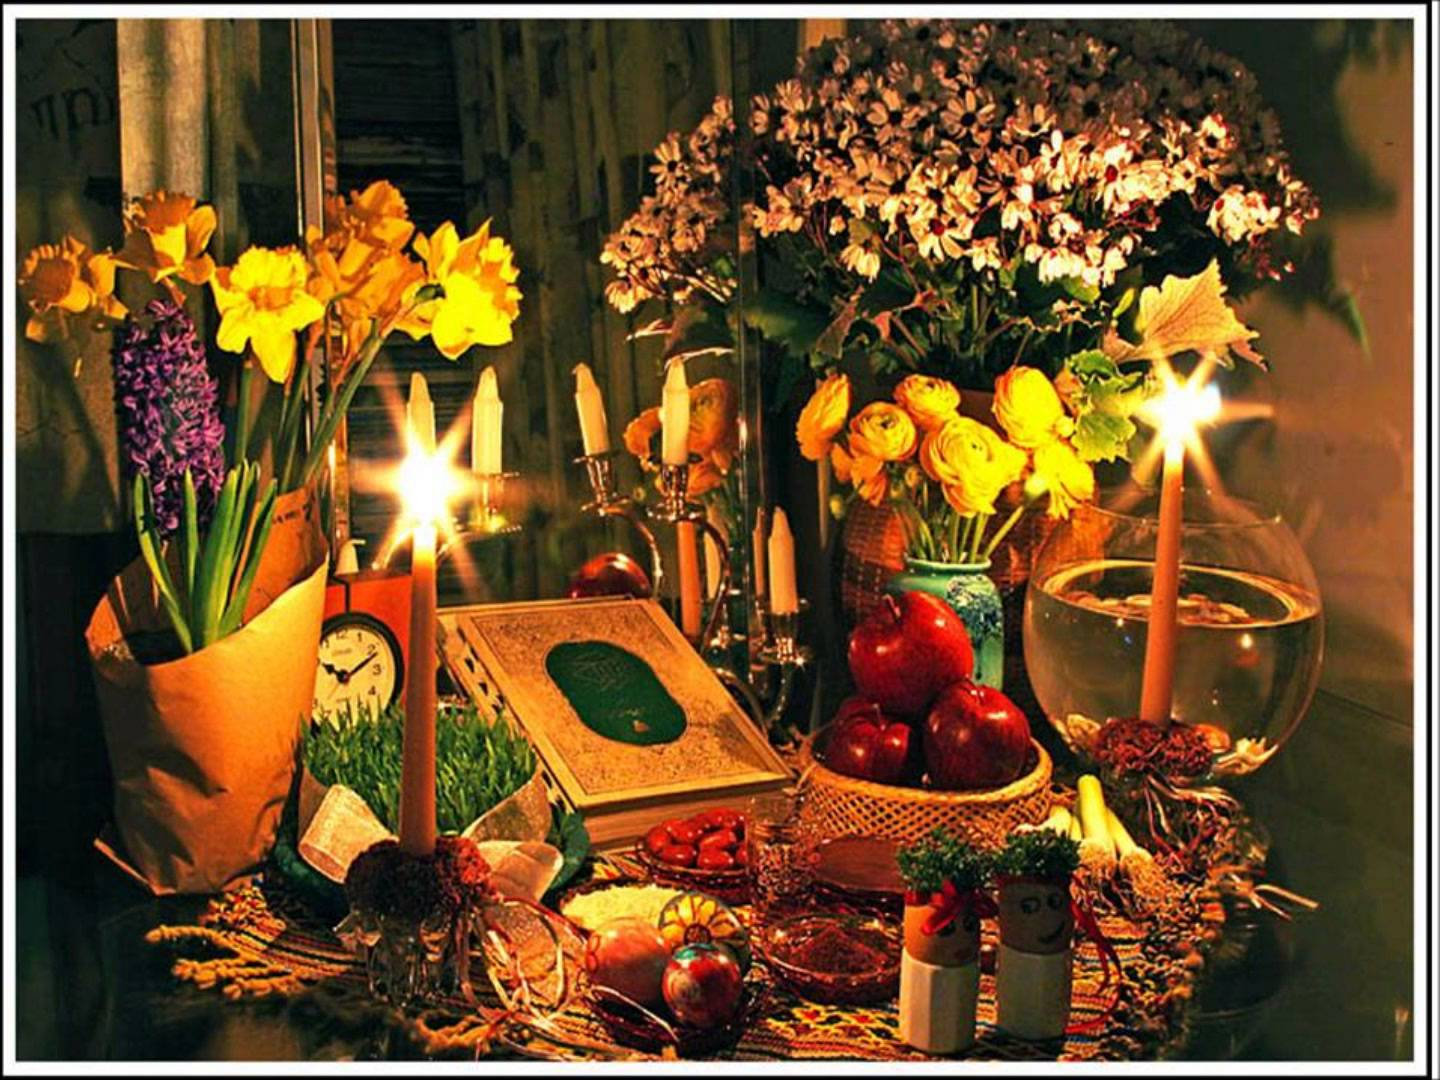 norouz Across much of the non-arab muslim world, people are celebrating norouz, the pre-islamic festival that marks arrival of spring and the beginning of the new year.